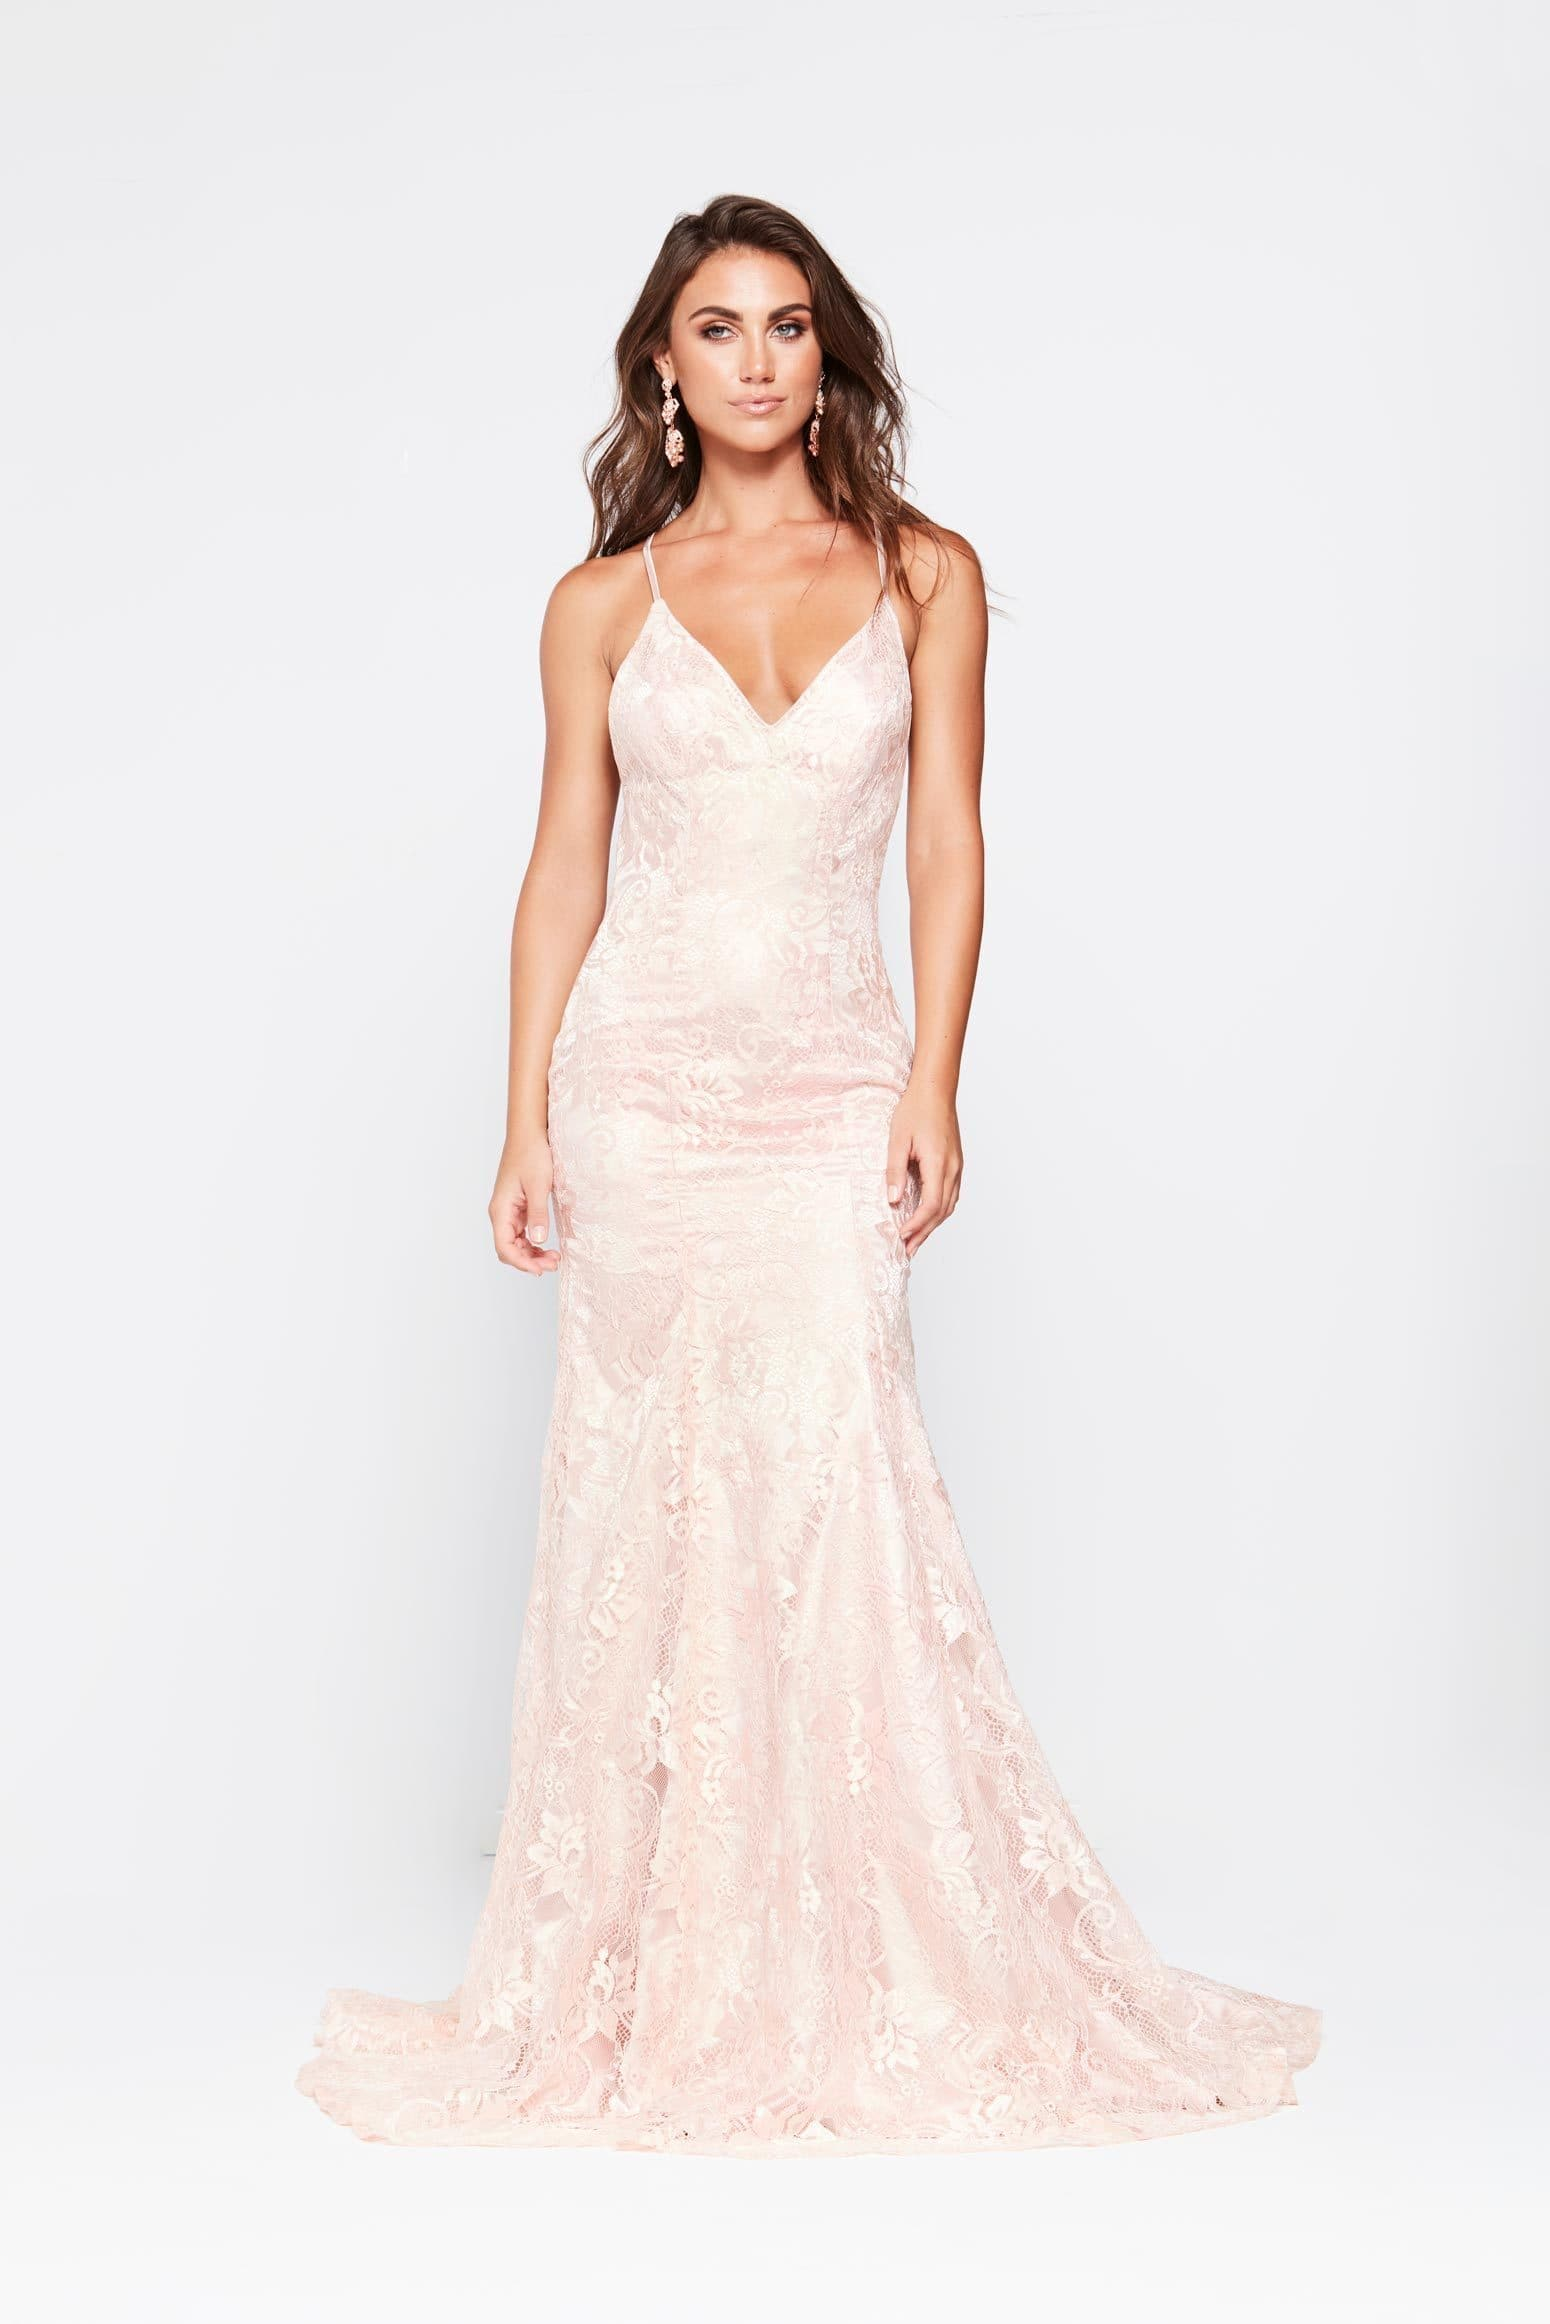 A&N Luxe Aisha Gown - Blush Lace Up Mermaid Gown with Low Back